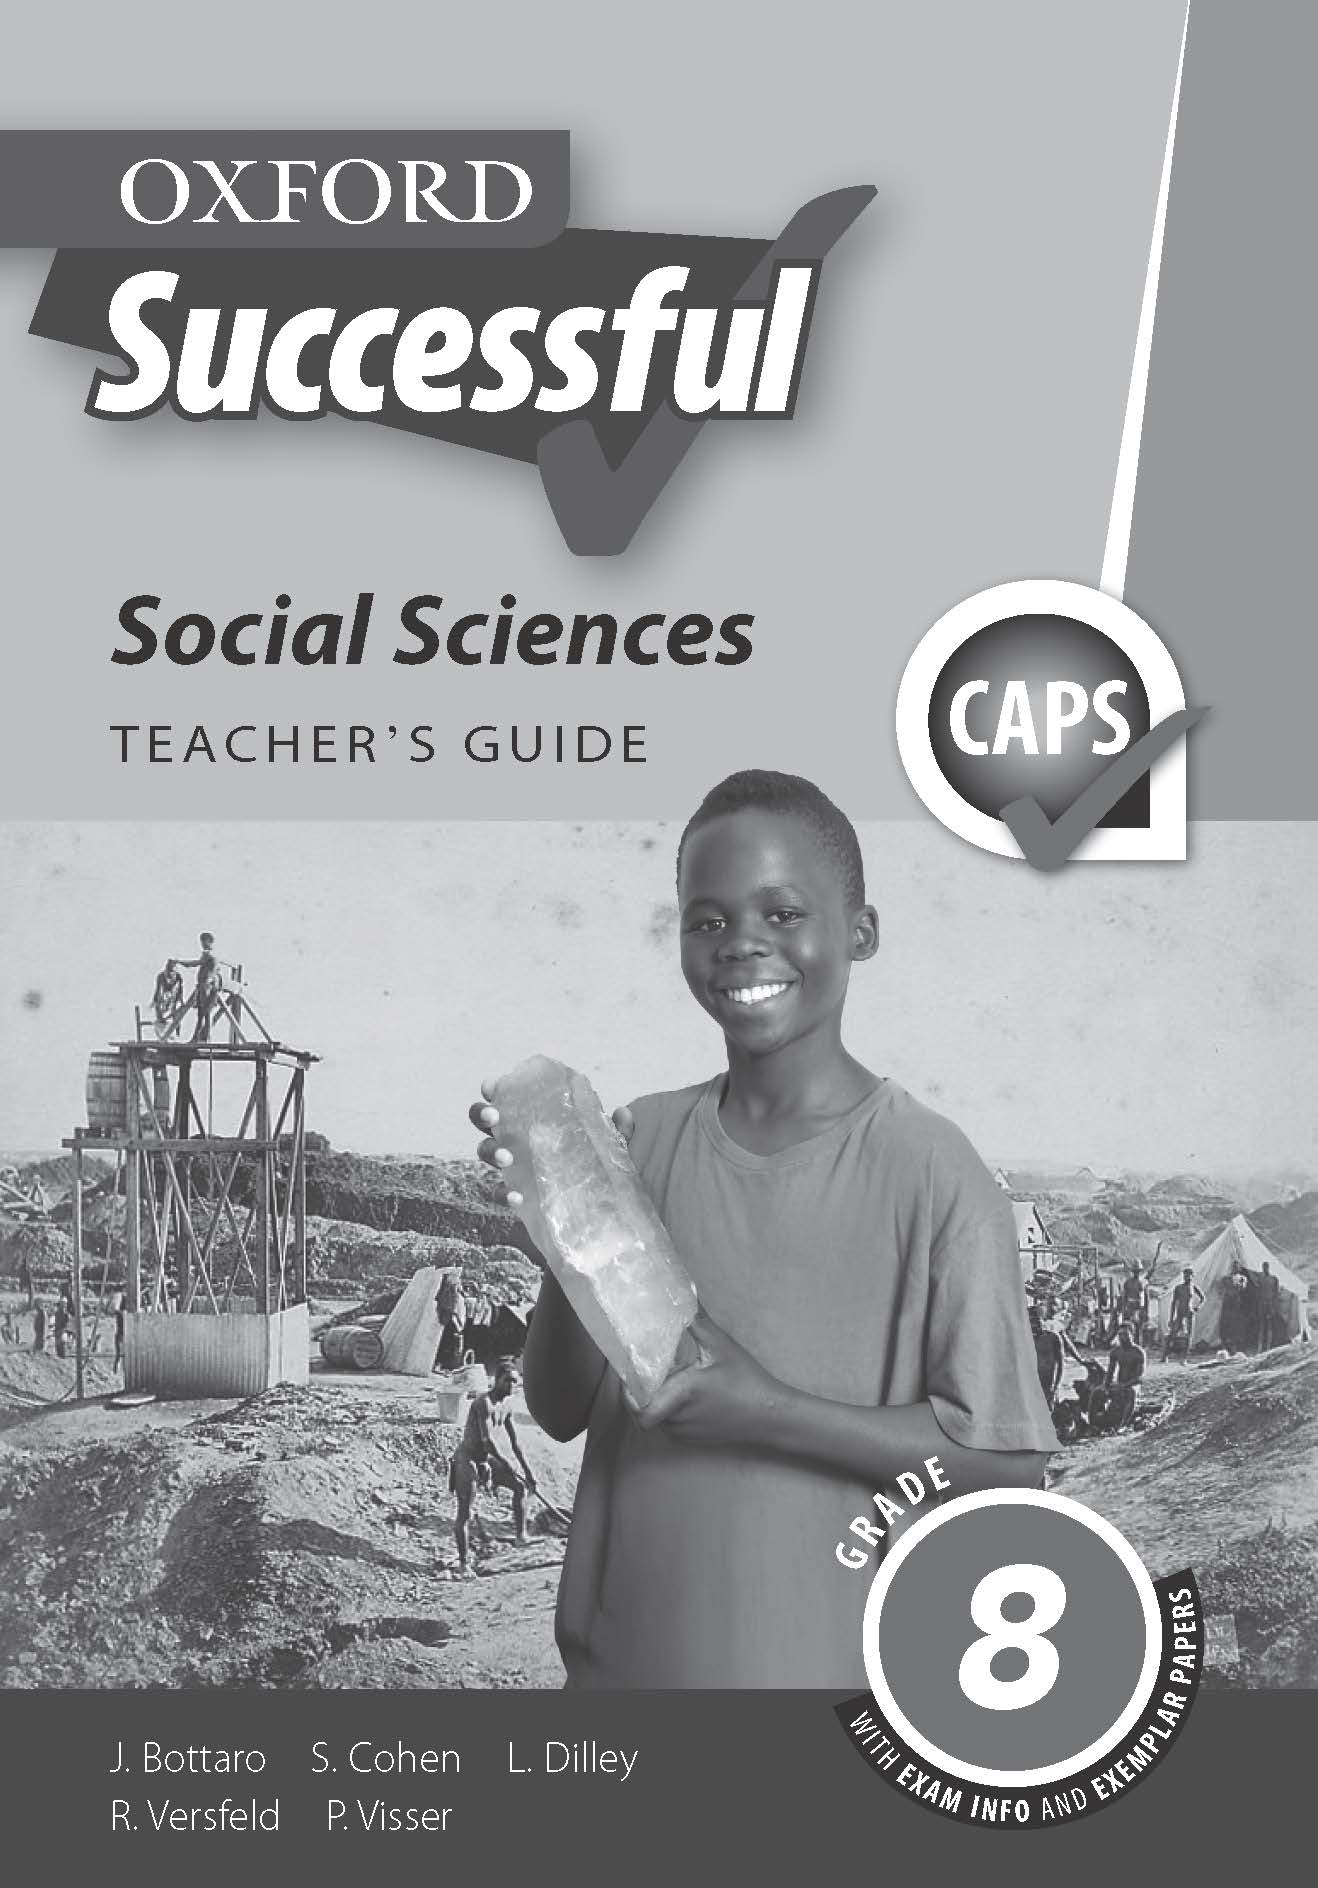 Oxford Successful Social Sciences Grade 8 Teacher's Guide